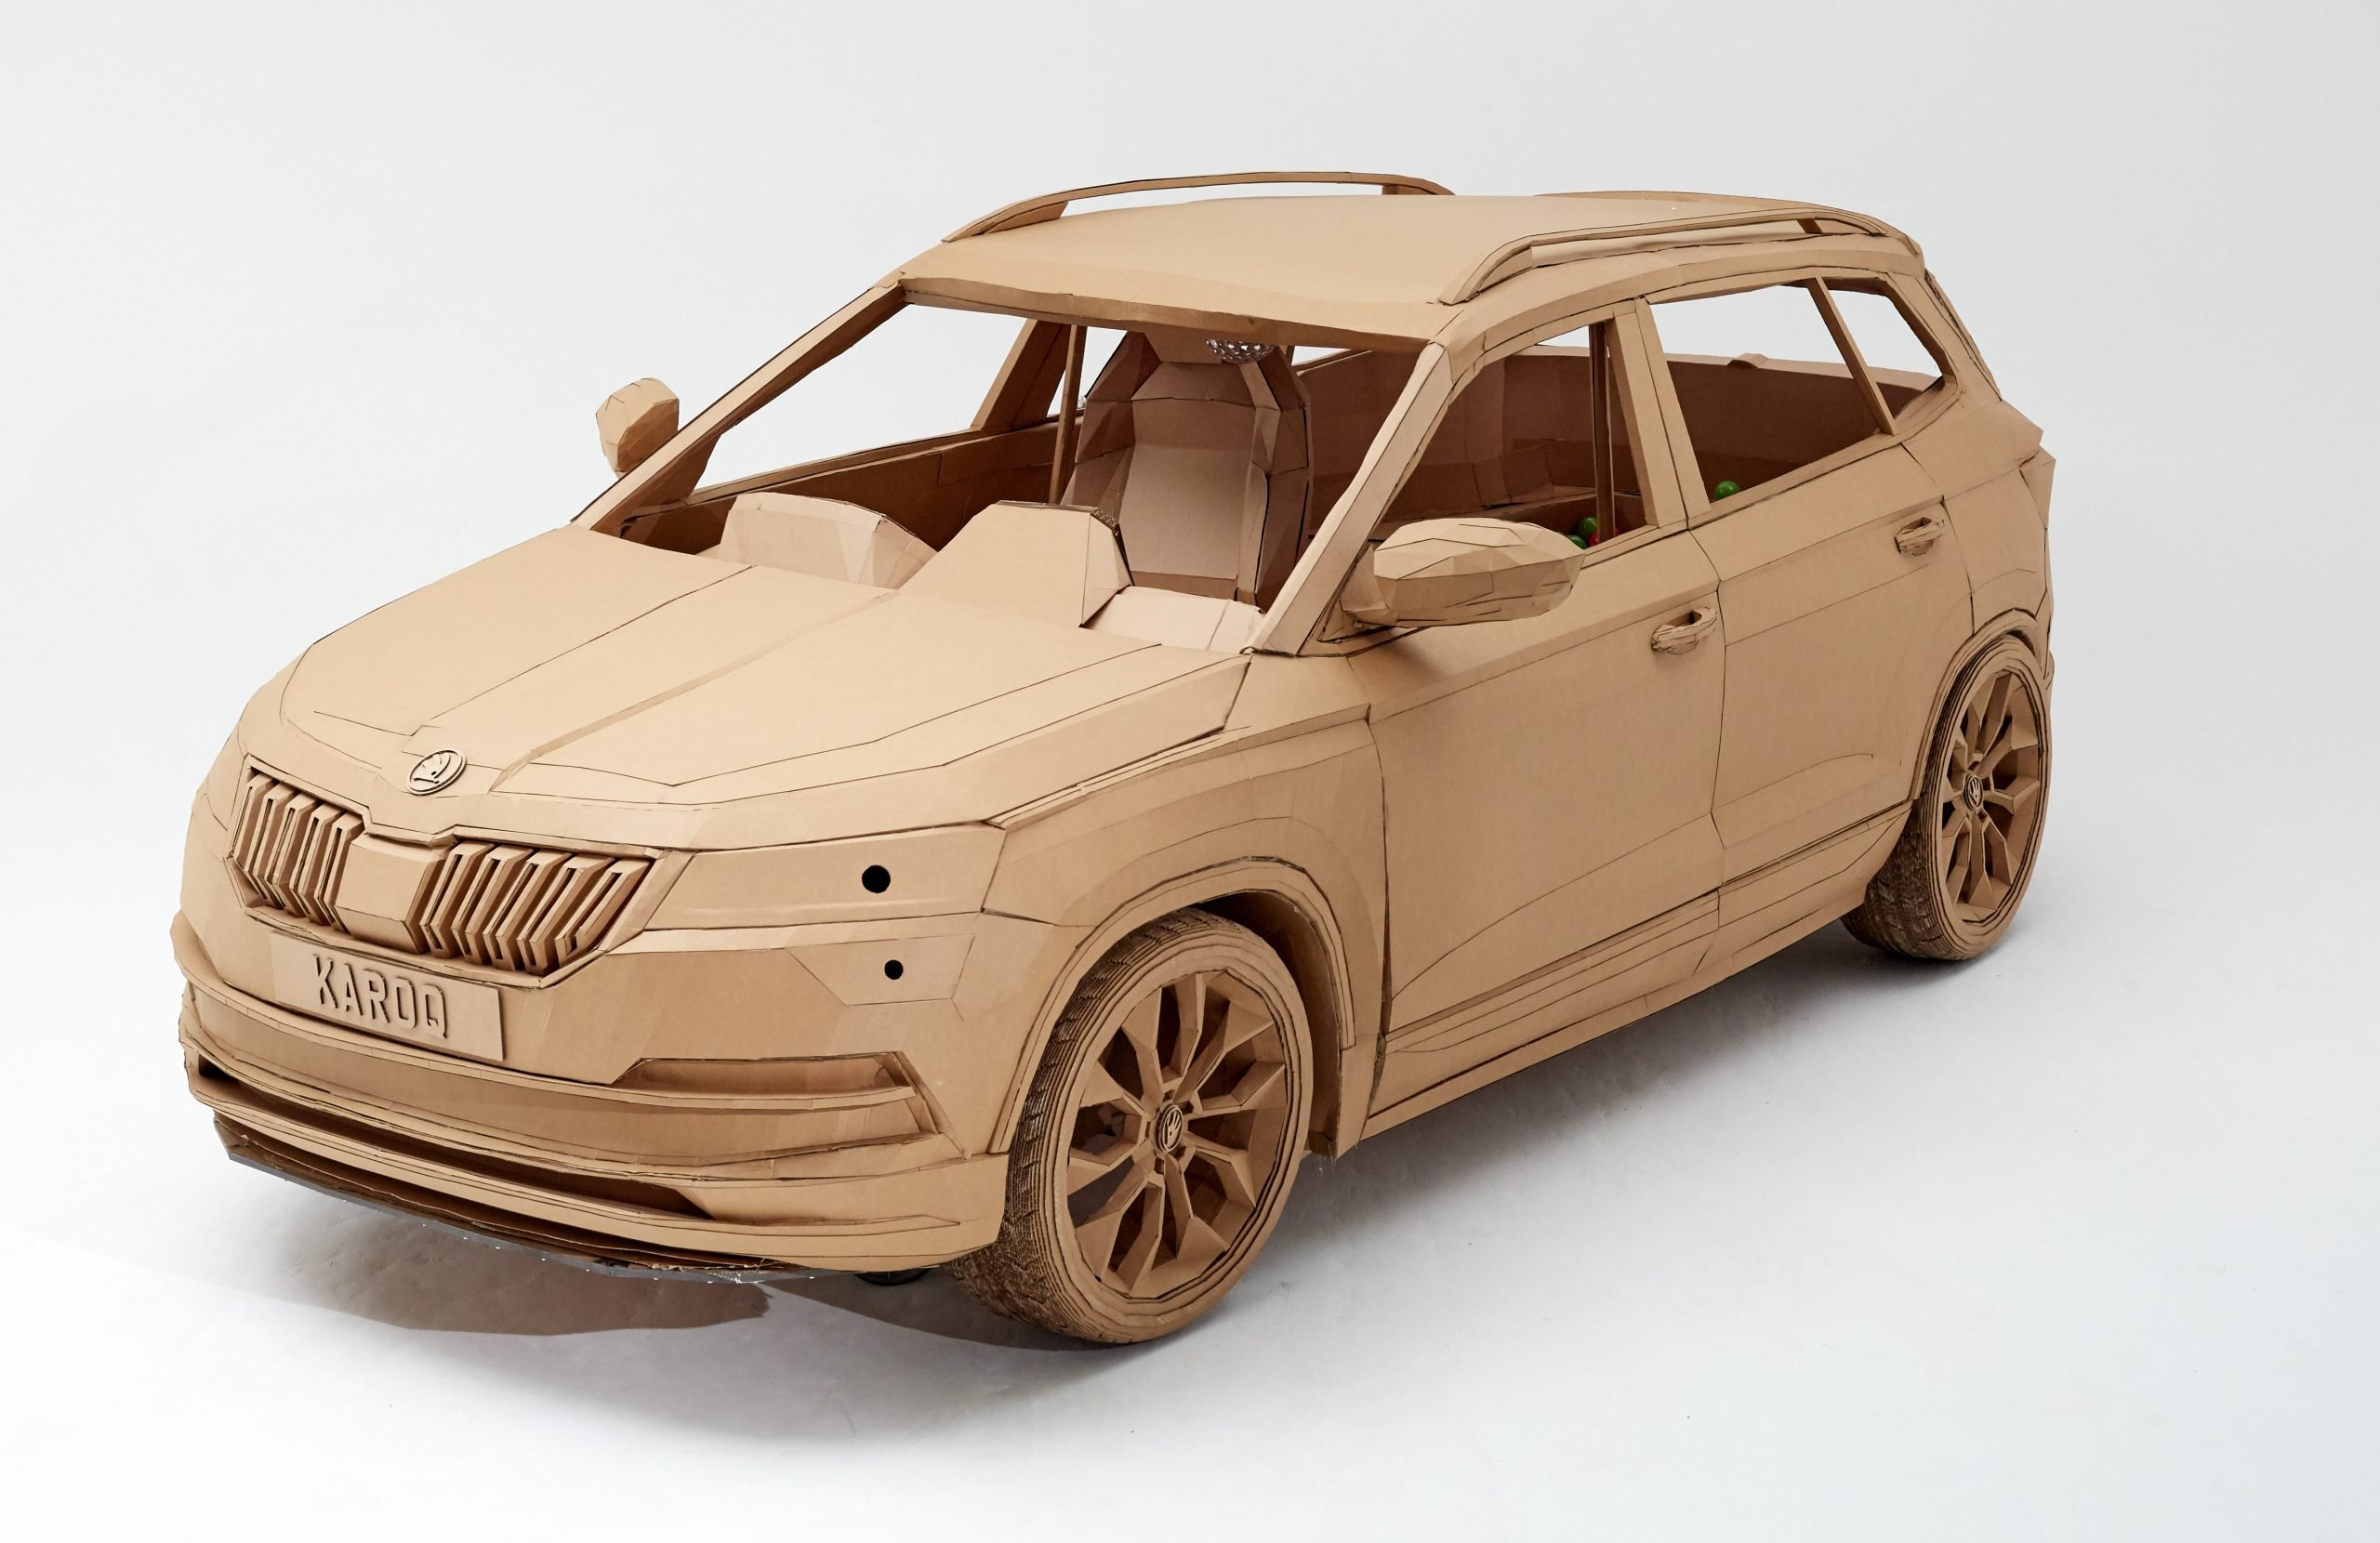 Cardboard car replica of Skoda Karoq by designer Lazerian